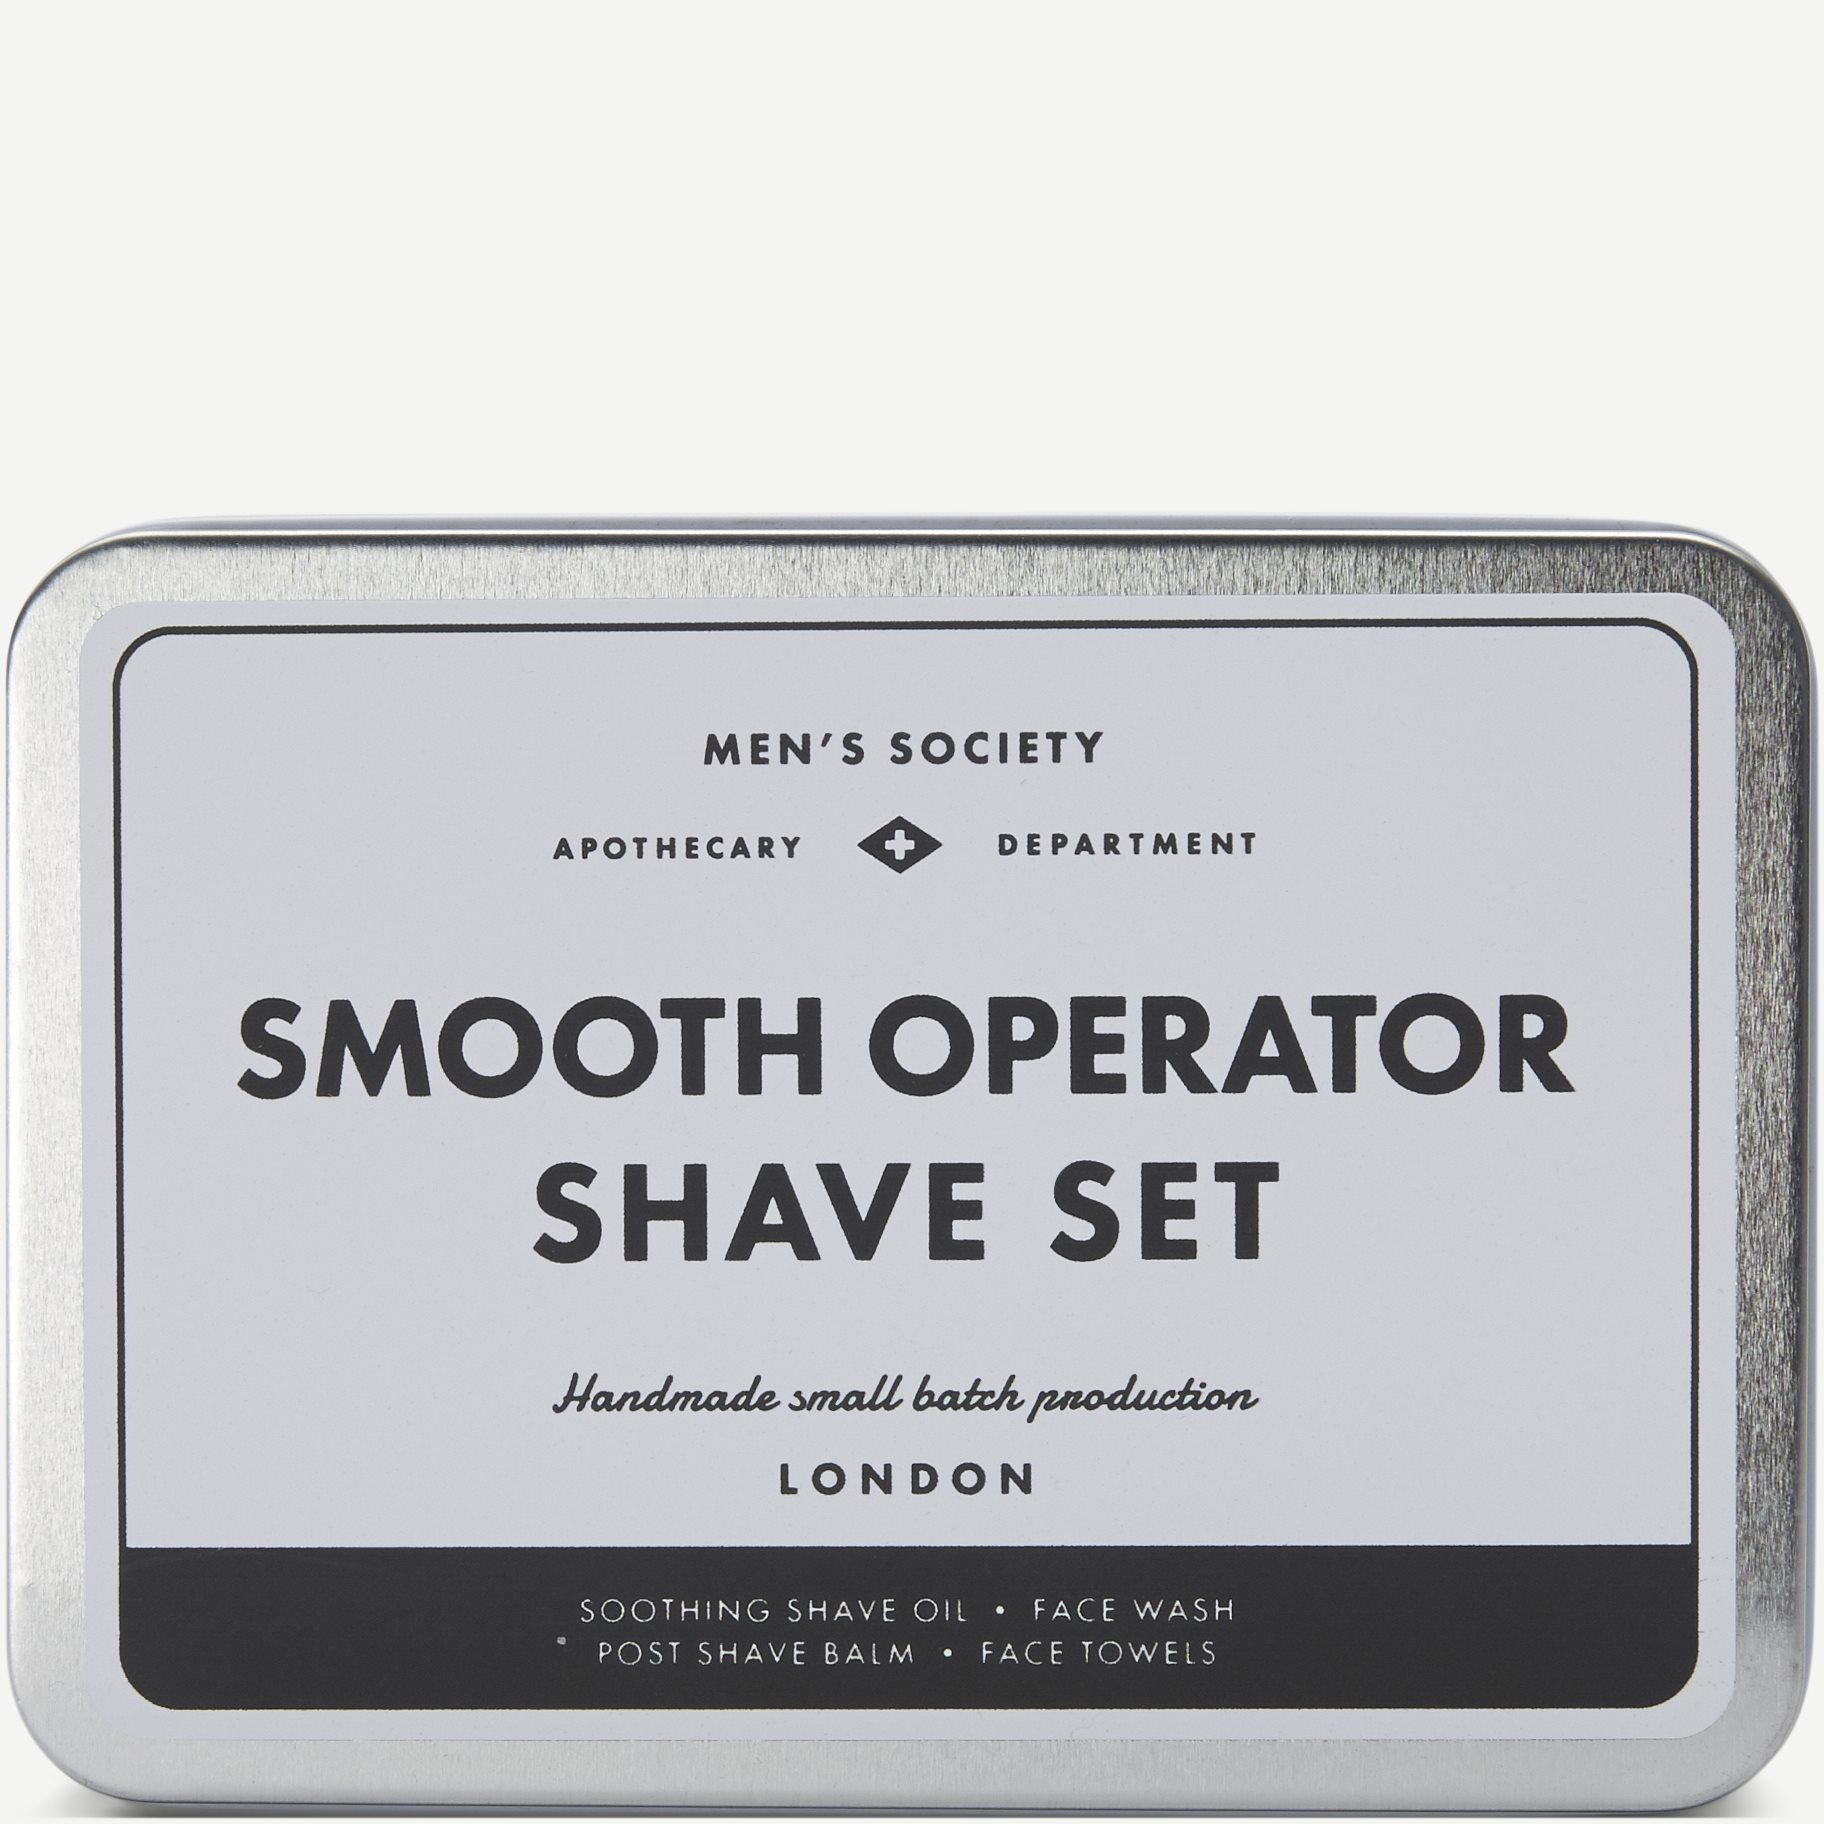 Smooth Operator Shave Set - Accessories - Grå